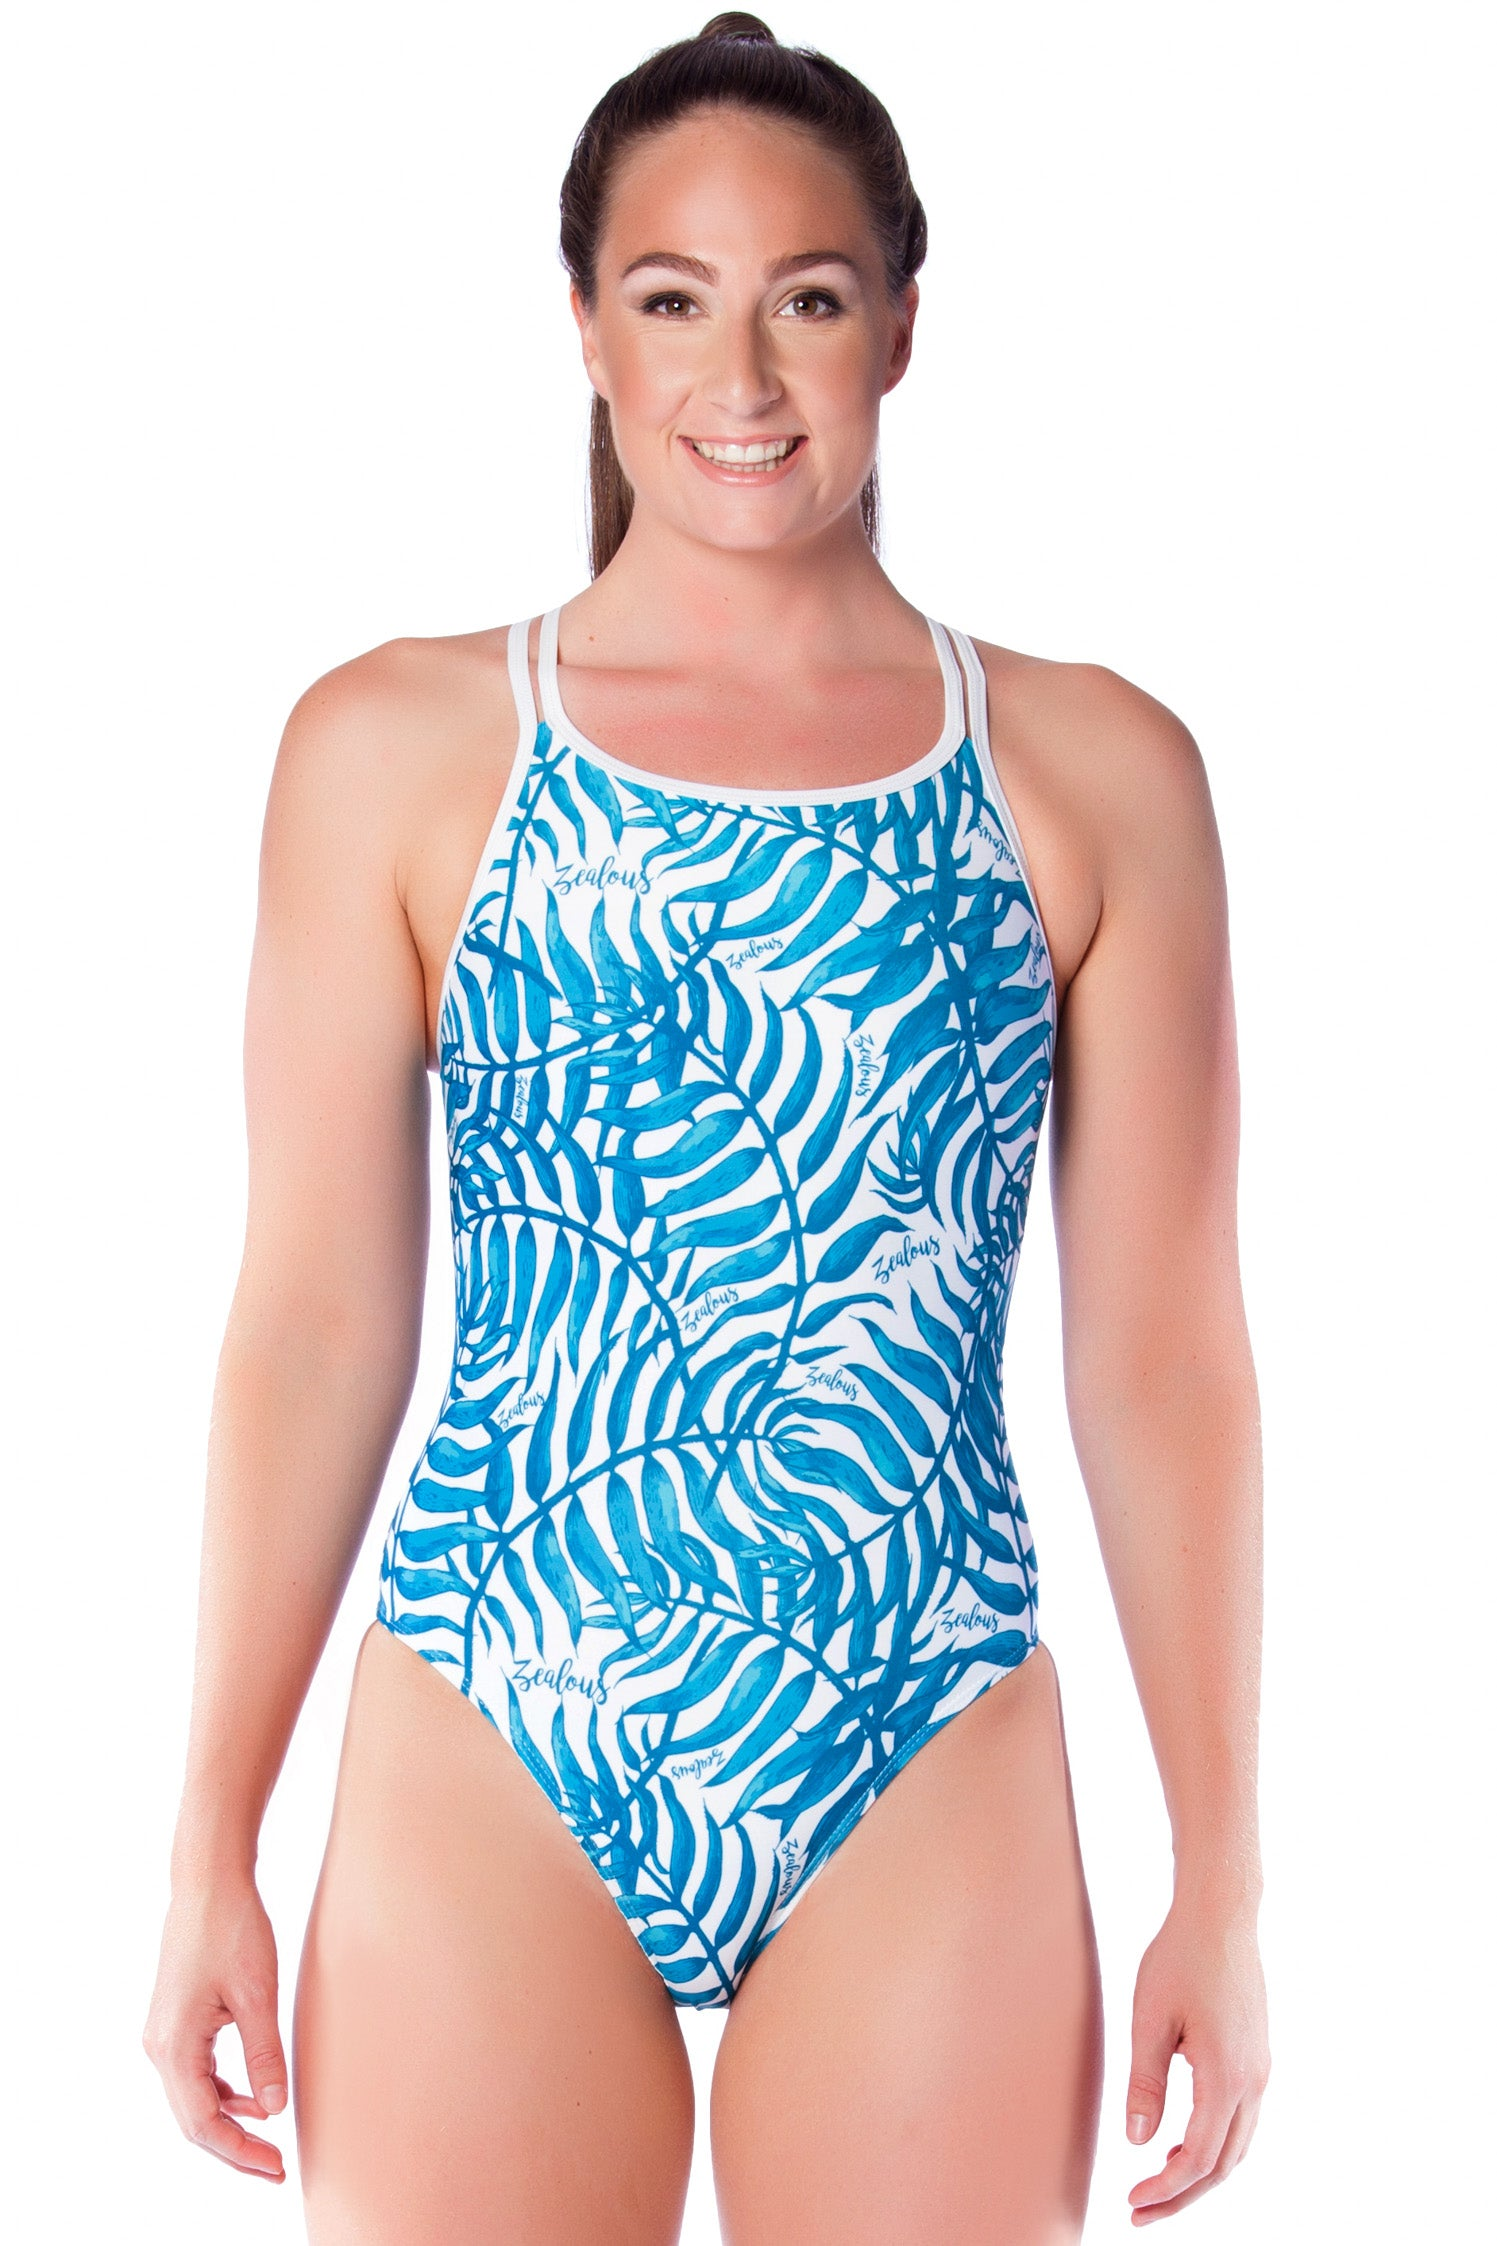 7177c4673dc05 Crystal Cove Ladies Cross Back - Shop Zealous Training Swimwear